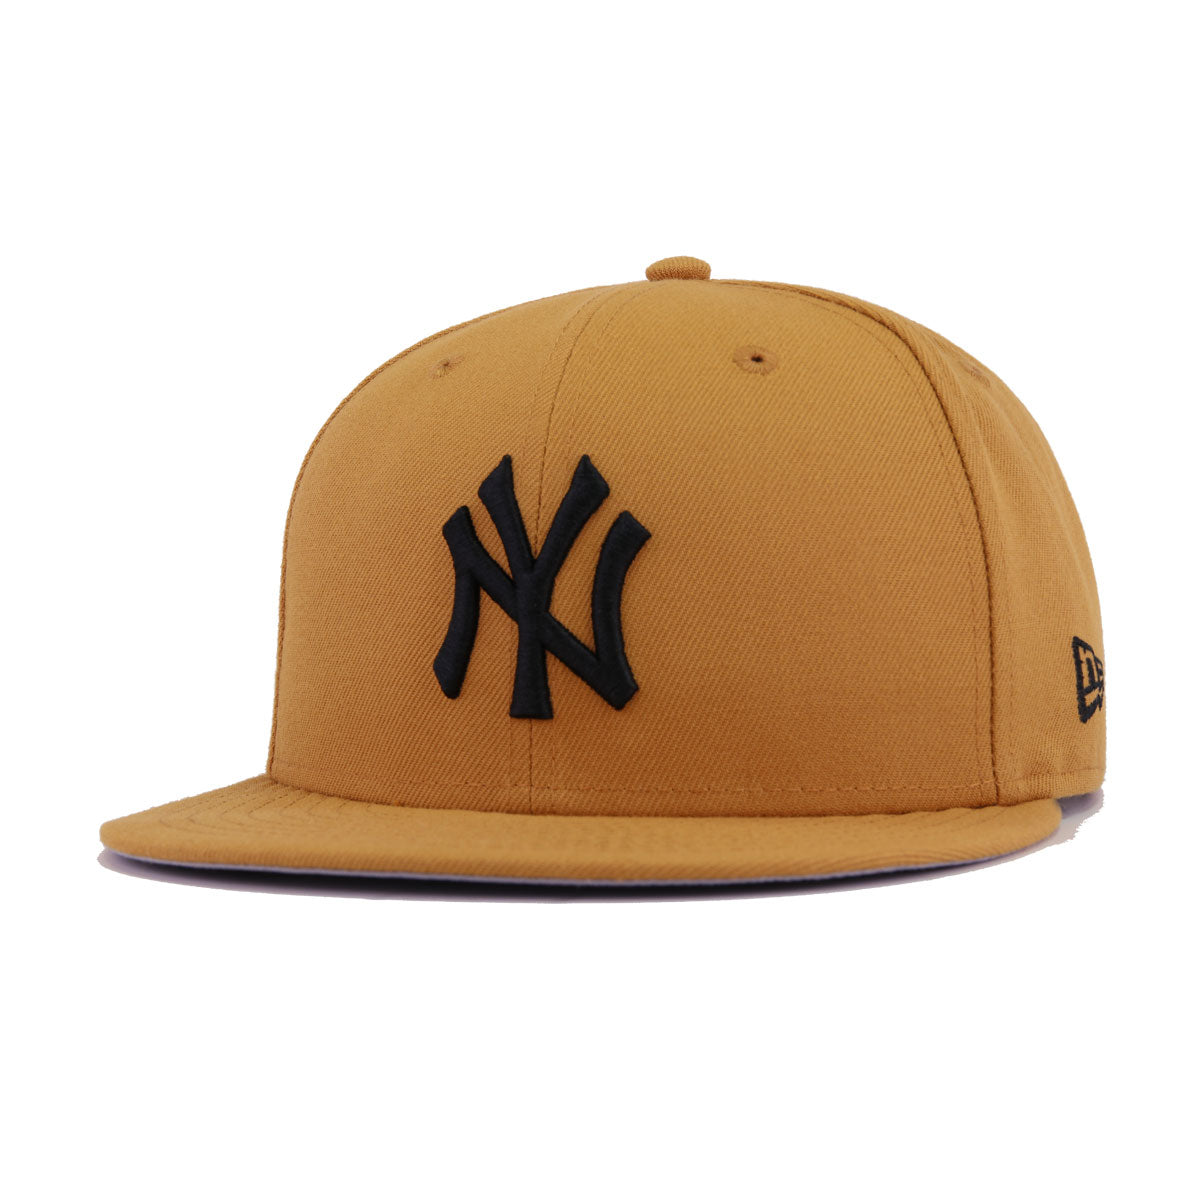 New York Yankees Panama Tan Old Yankee Stadium New Era 9Fifty Snapback